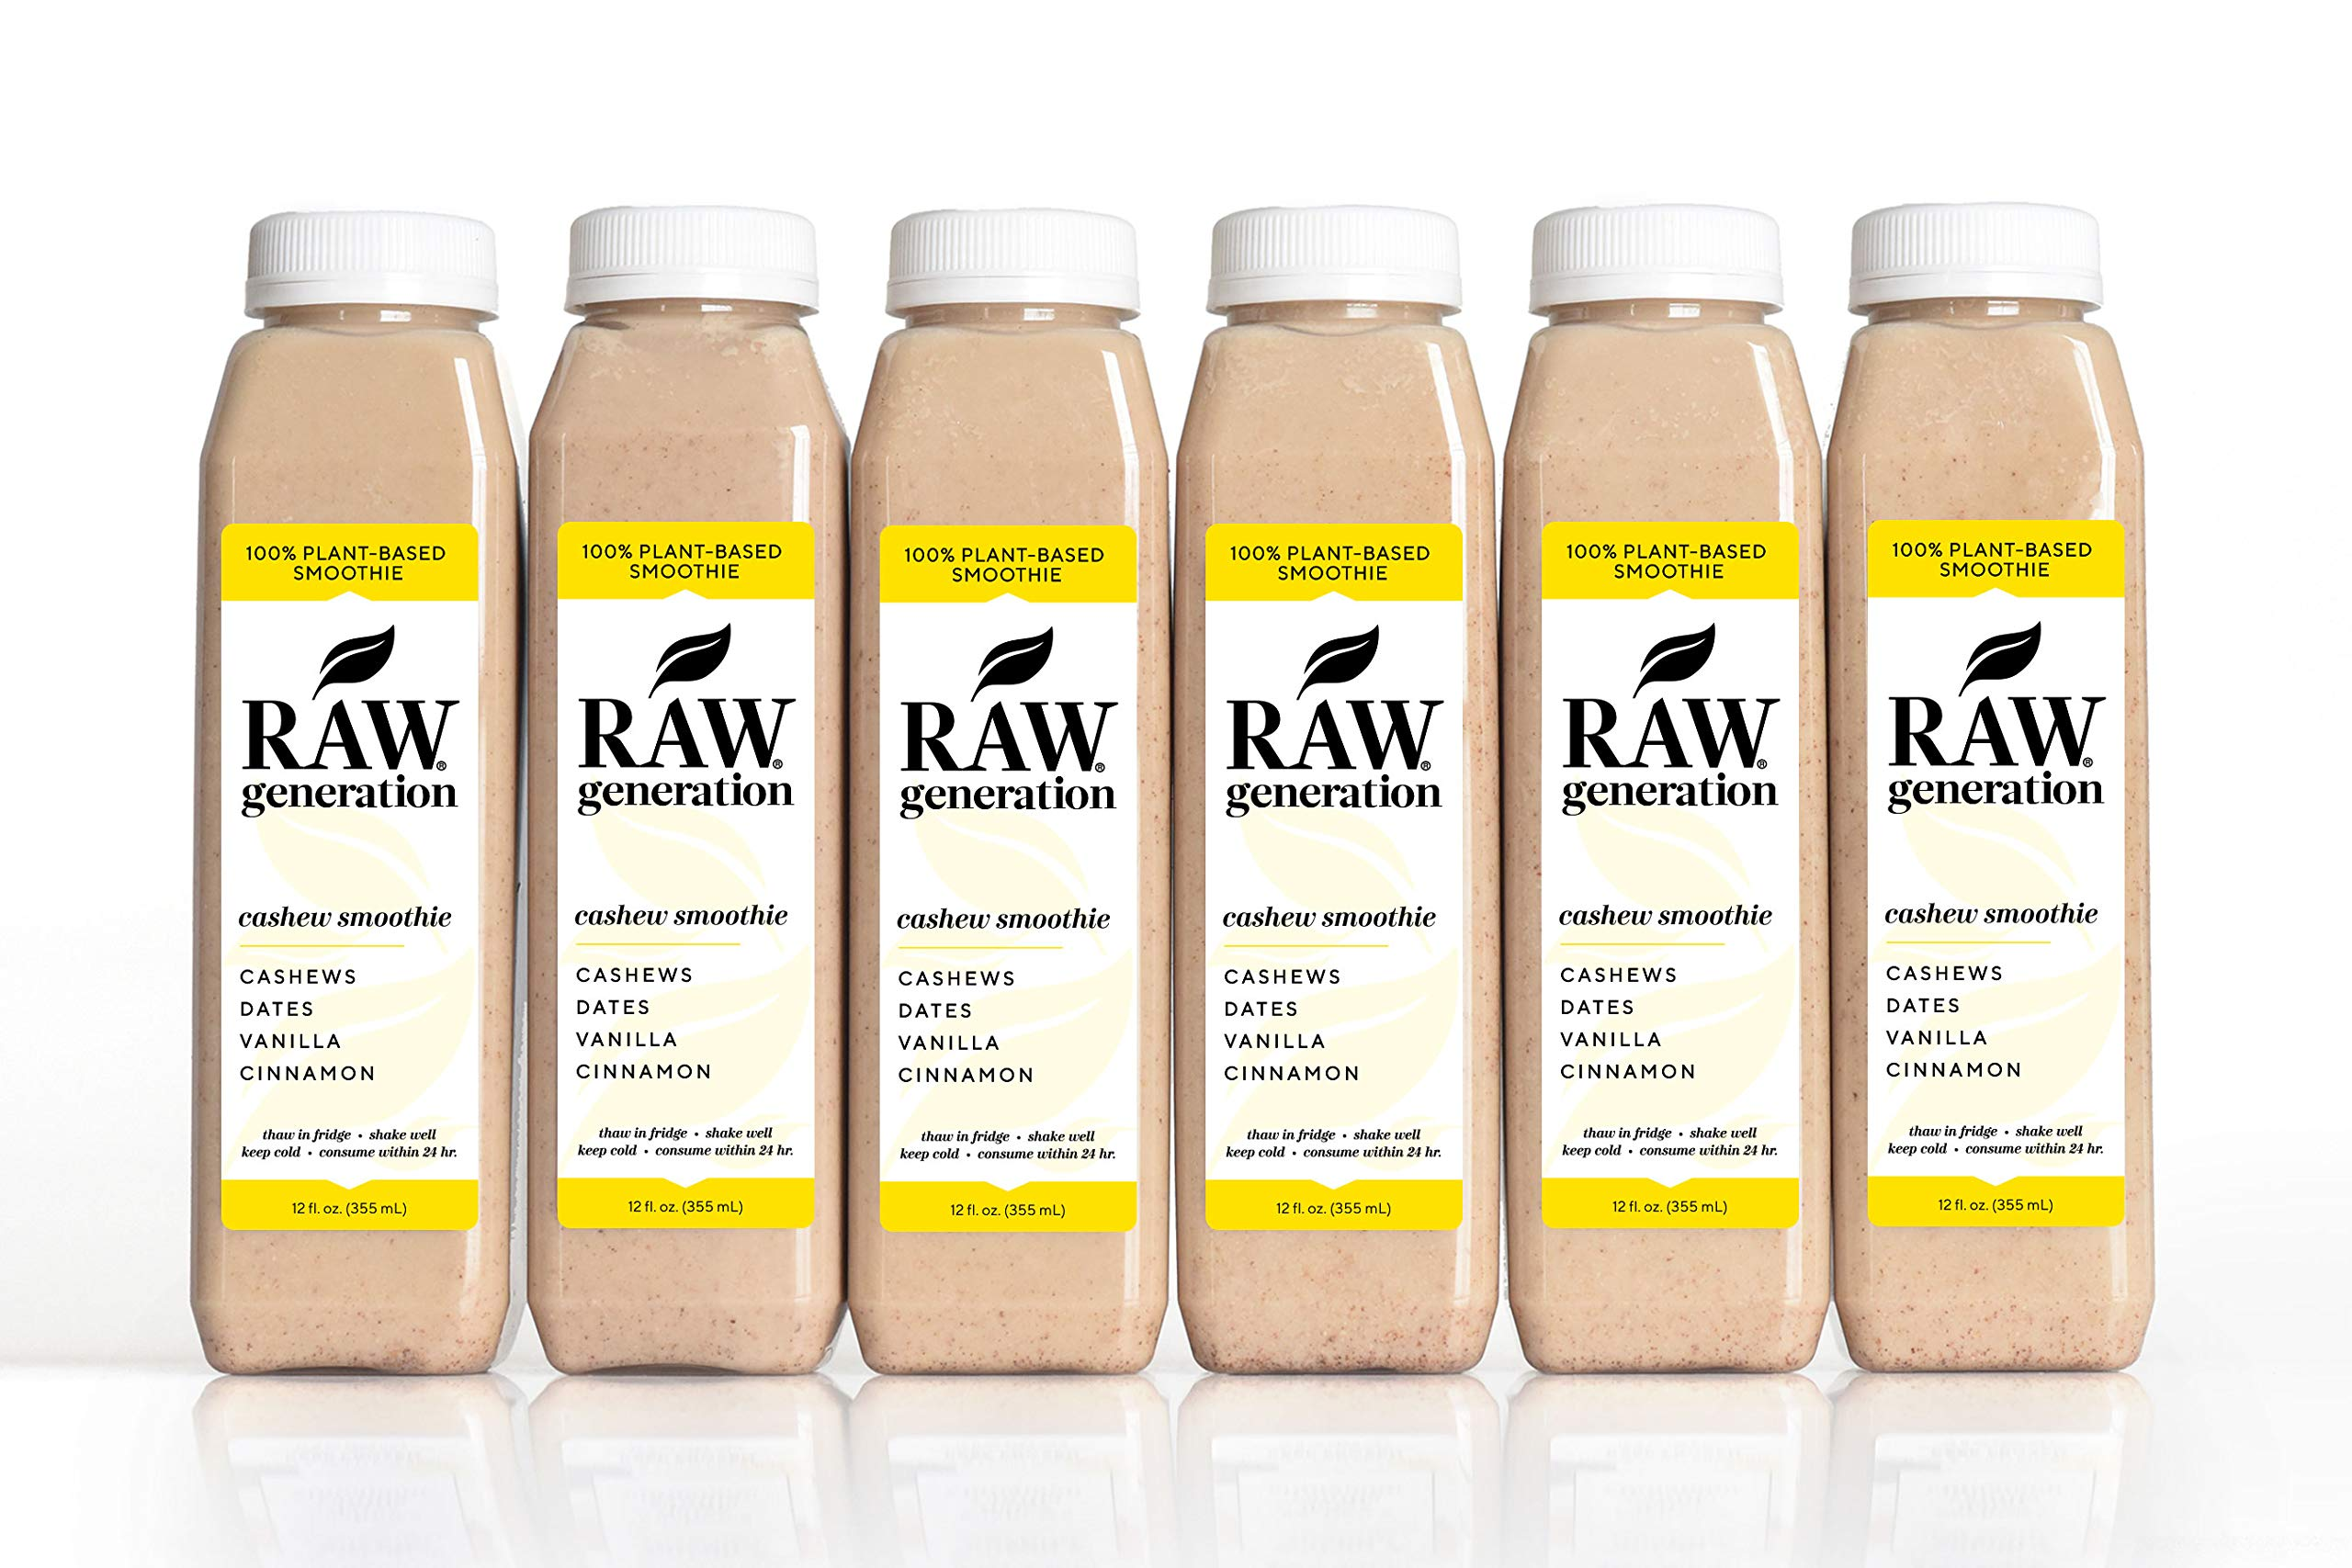 Raw Generation Cashew Smoothie - Healthiest Way to Lose Weight & Stay Strong/Plant-Based Protein Smoothie / 18 Count by RAW generation (Image #1)